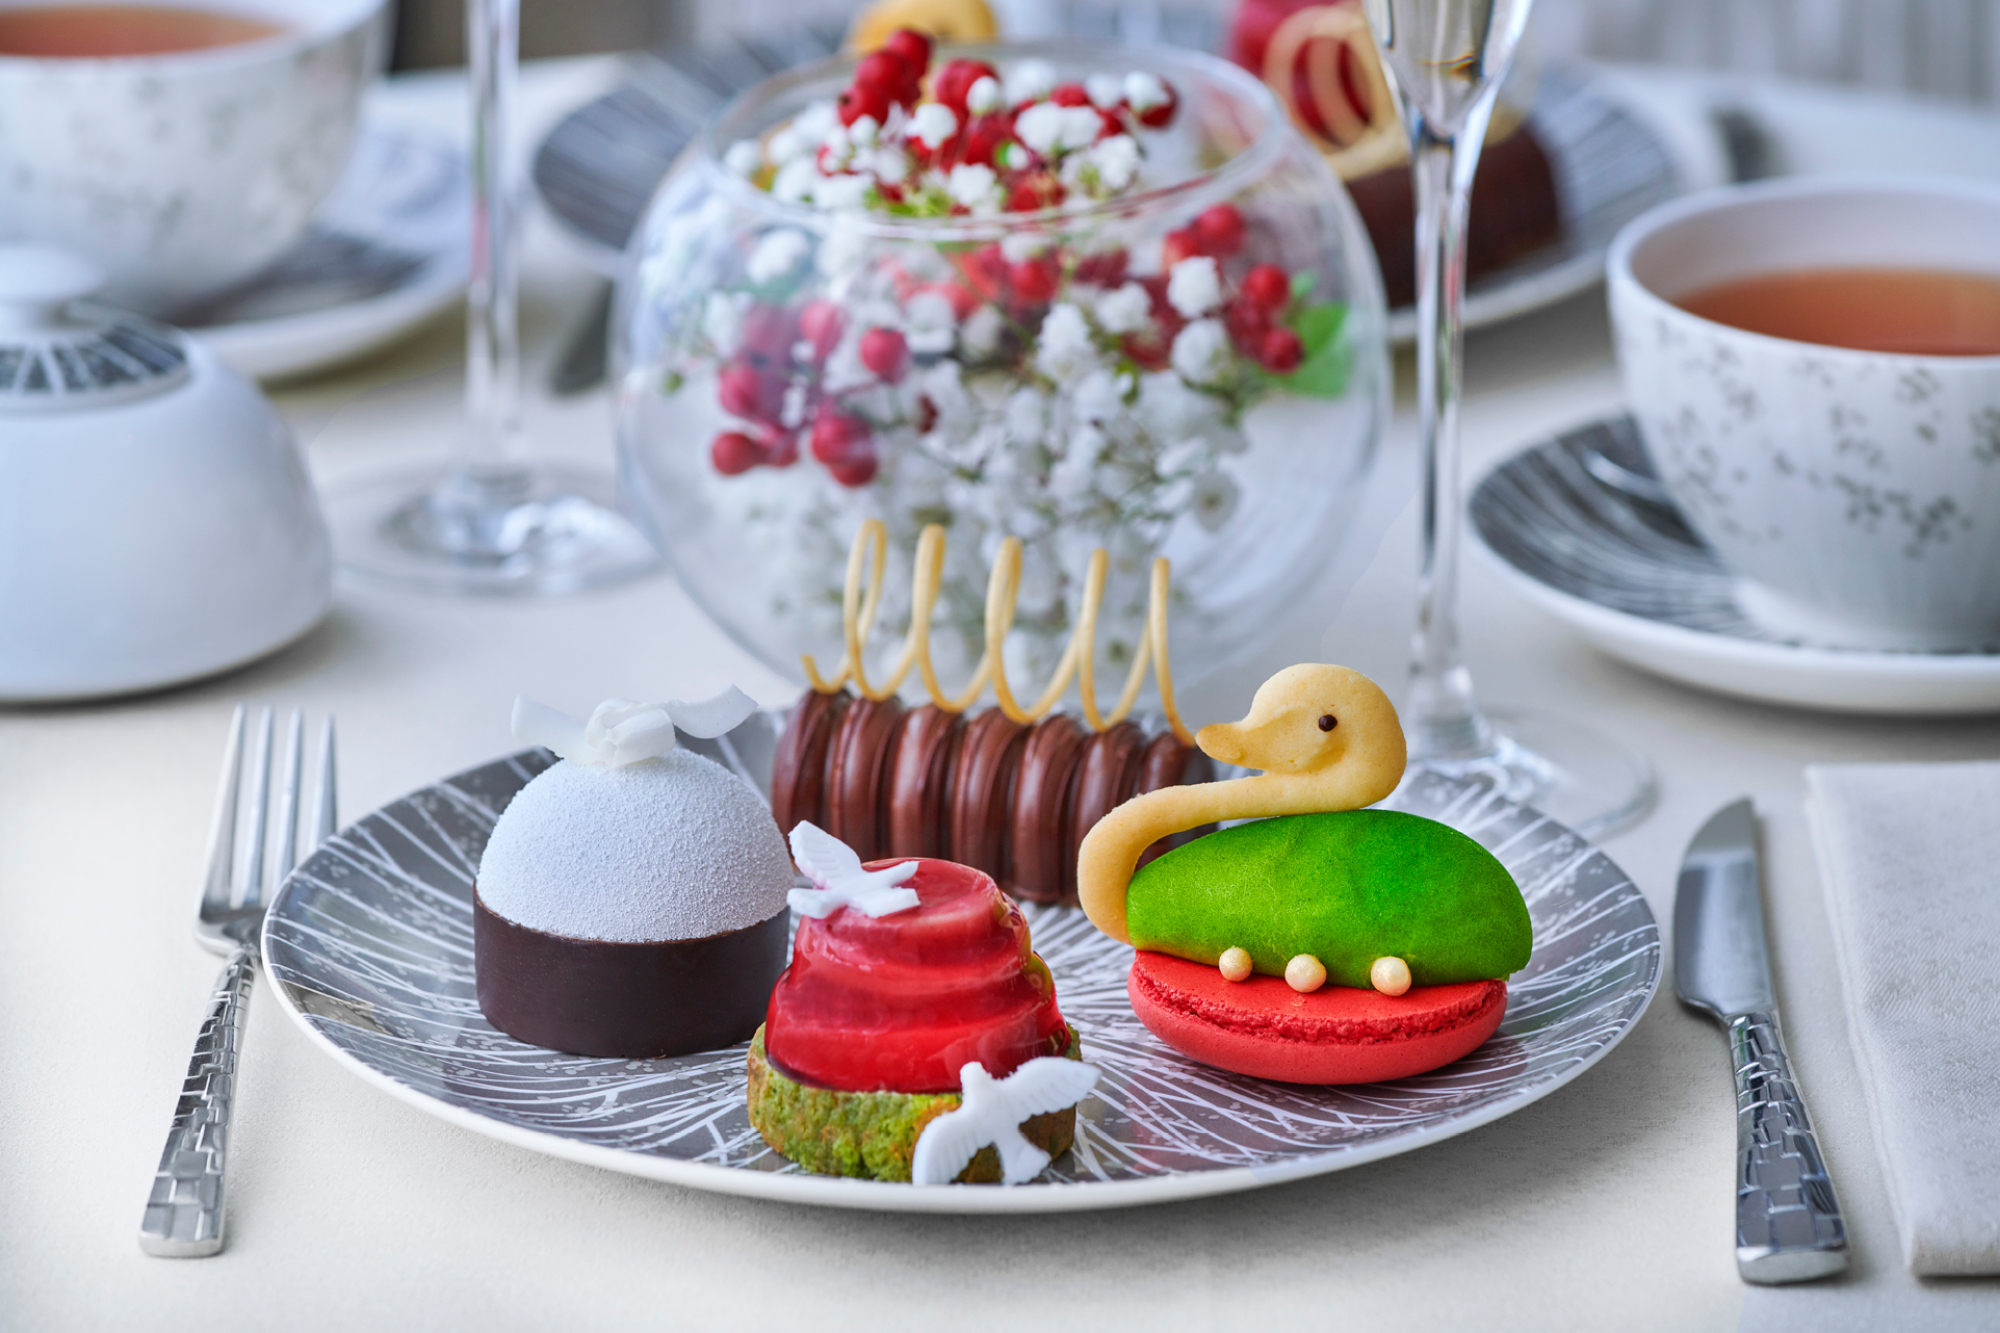 The Festive Afternoon Tea with Perrier-Jouët at the Wellington Lounge at the Intercontinental London Park Lane hotel